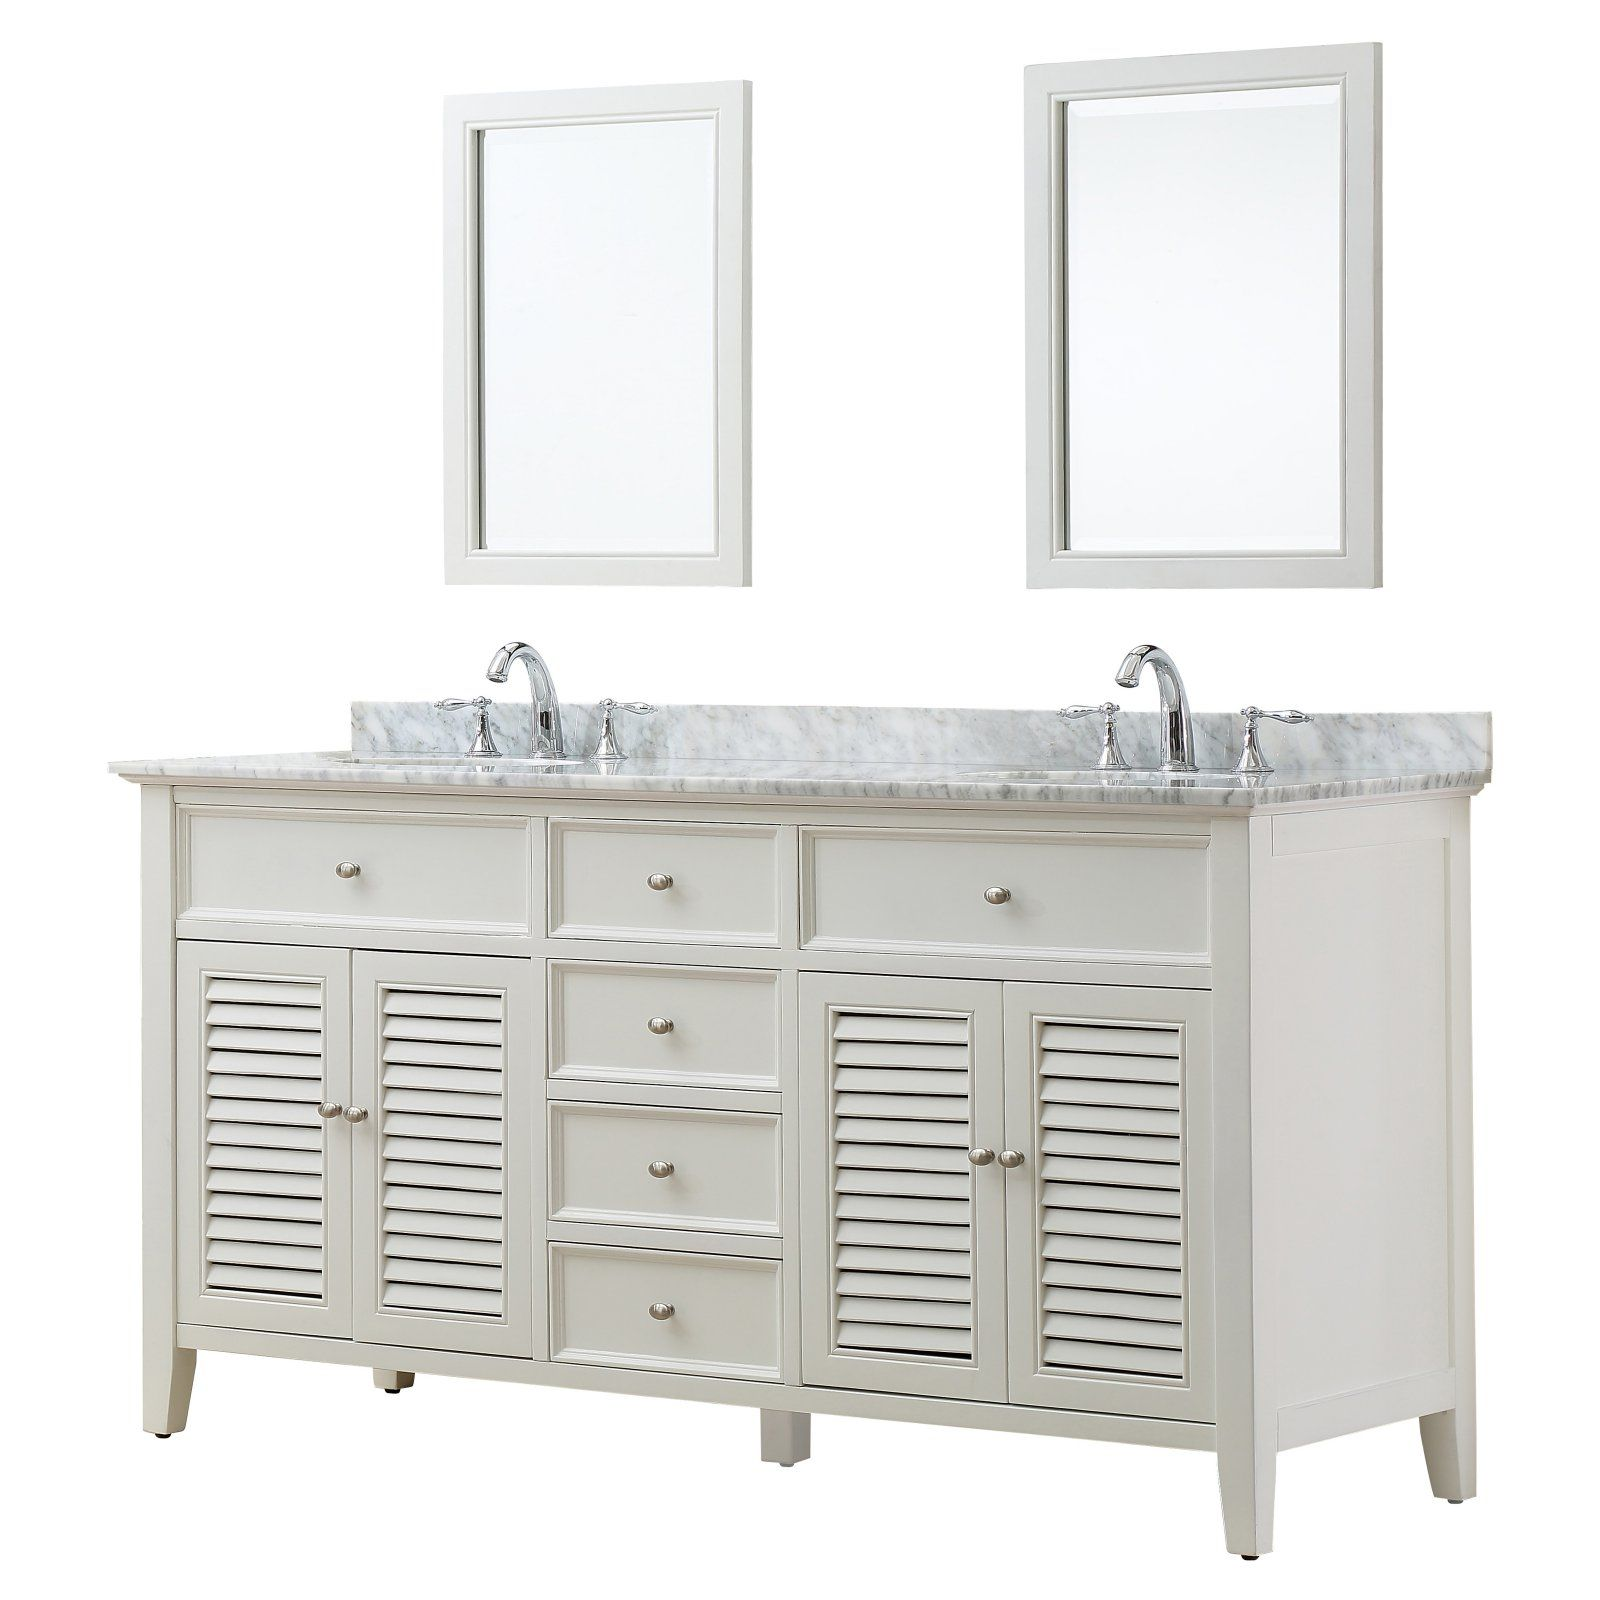 Direct Vanity Sink Shutter 6070d12 70 In Double Bathroom Vanity